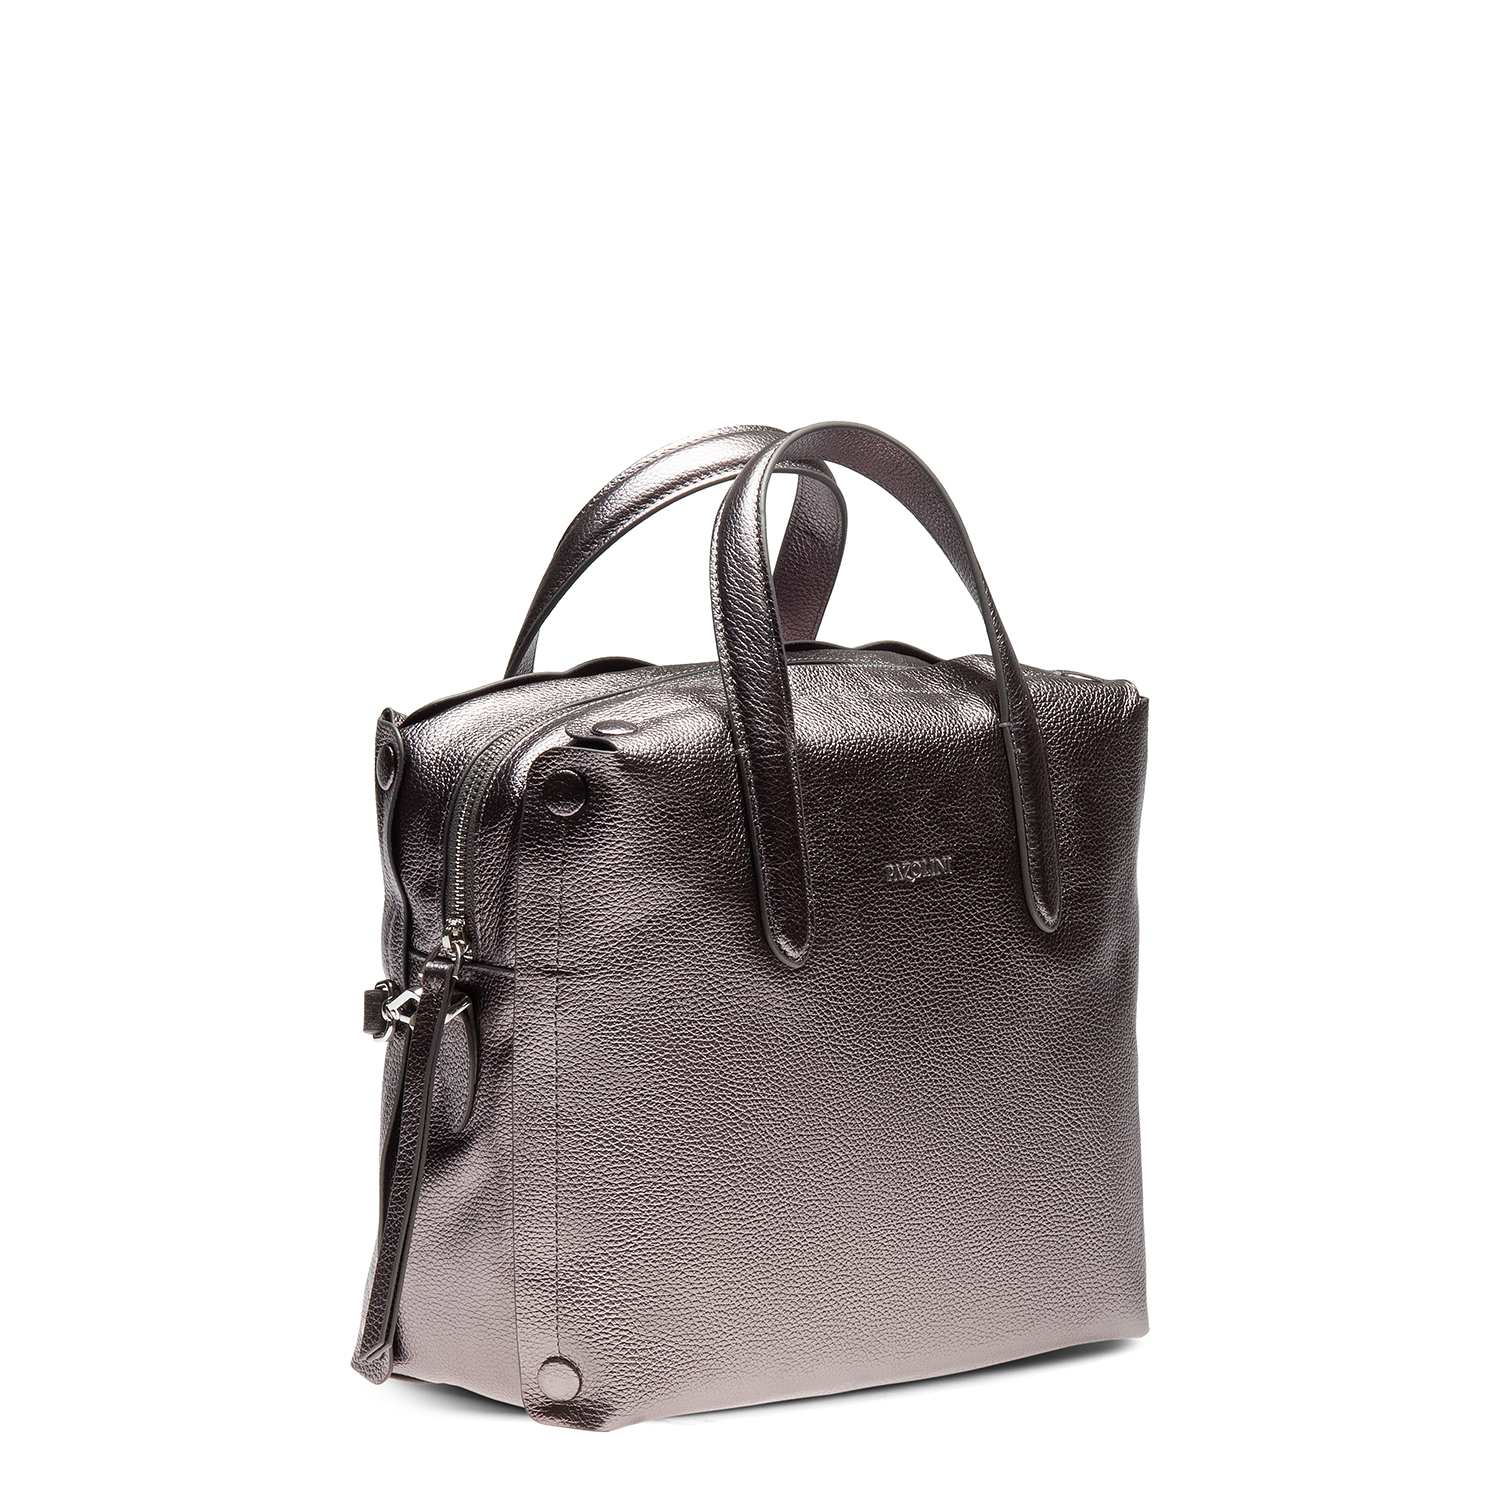 BORSA SHOPPING PAZOLINI PS-N1901-8